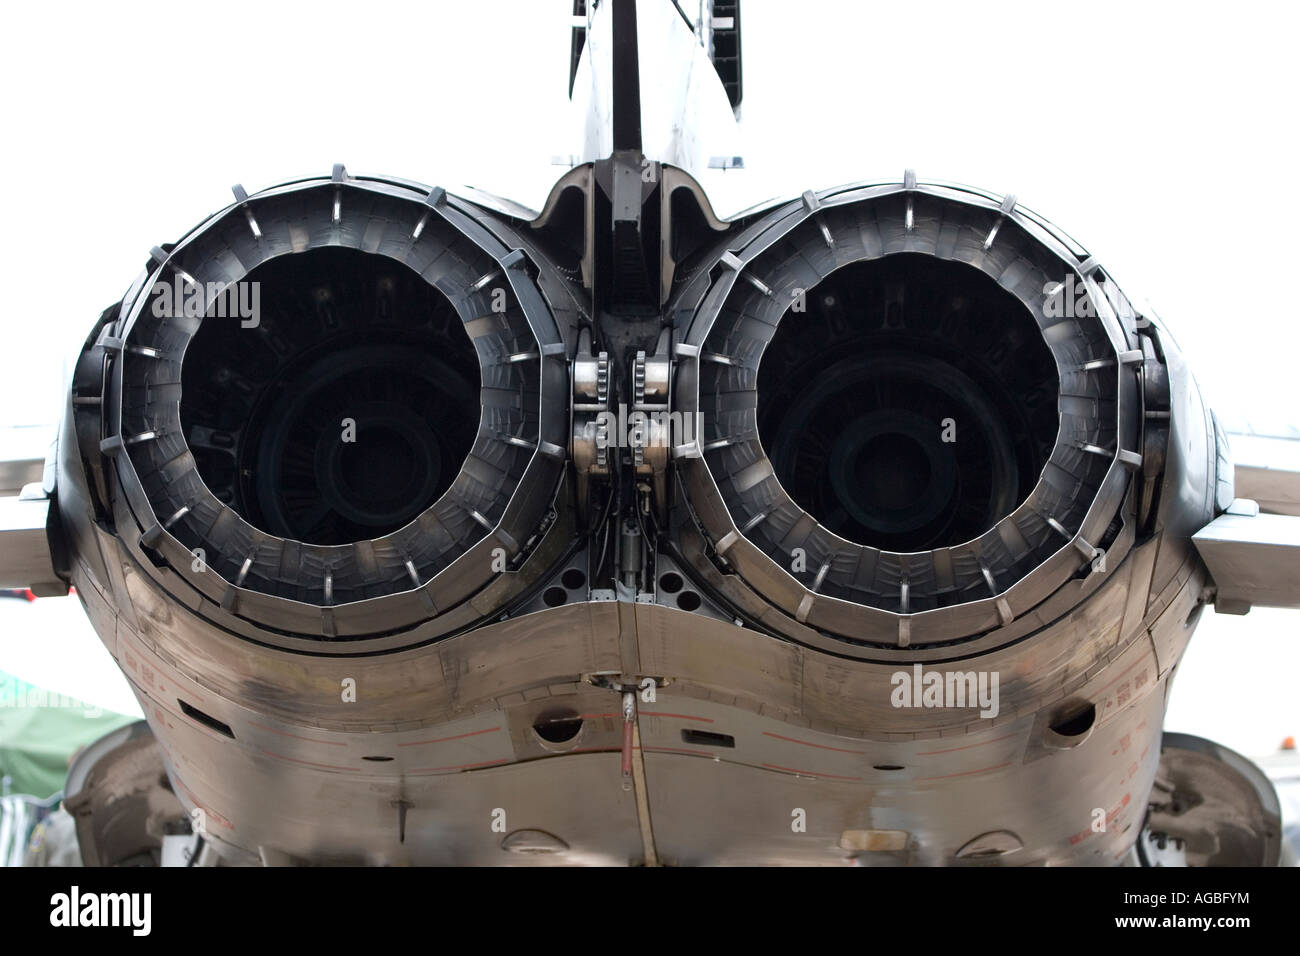 Tornado military jet close up detail of the exhaust system Stock Photo